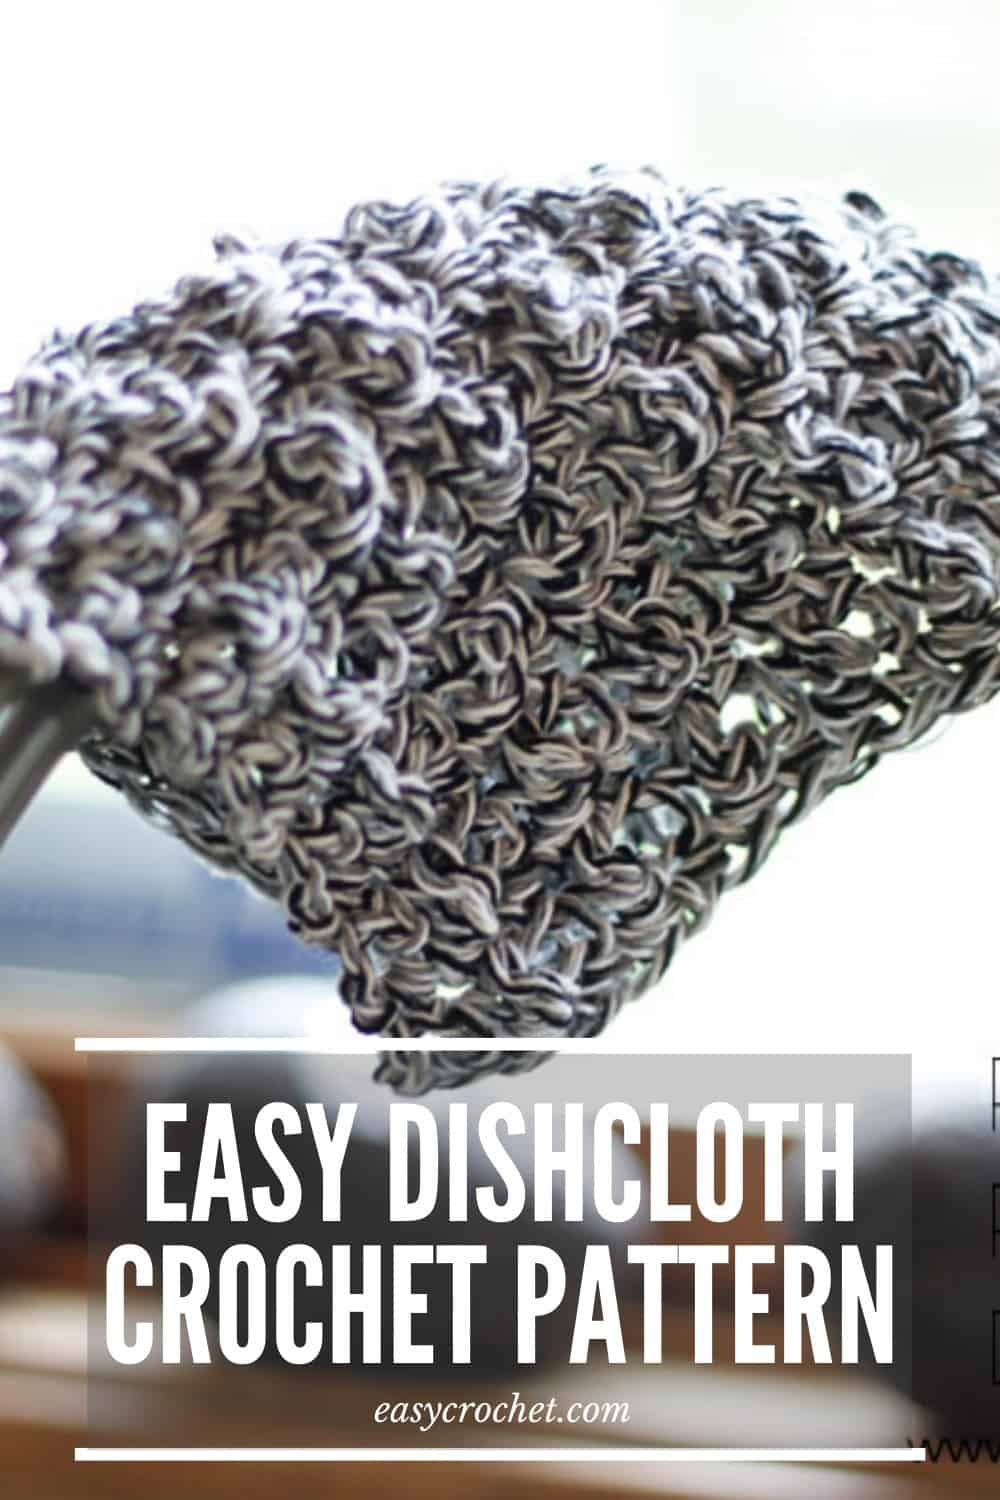 Easy Crochet Dishcloth Pattern - Textured to help clean dishes! via @easycrochetcom